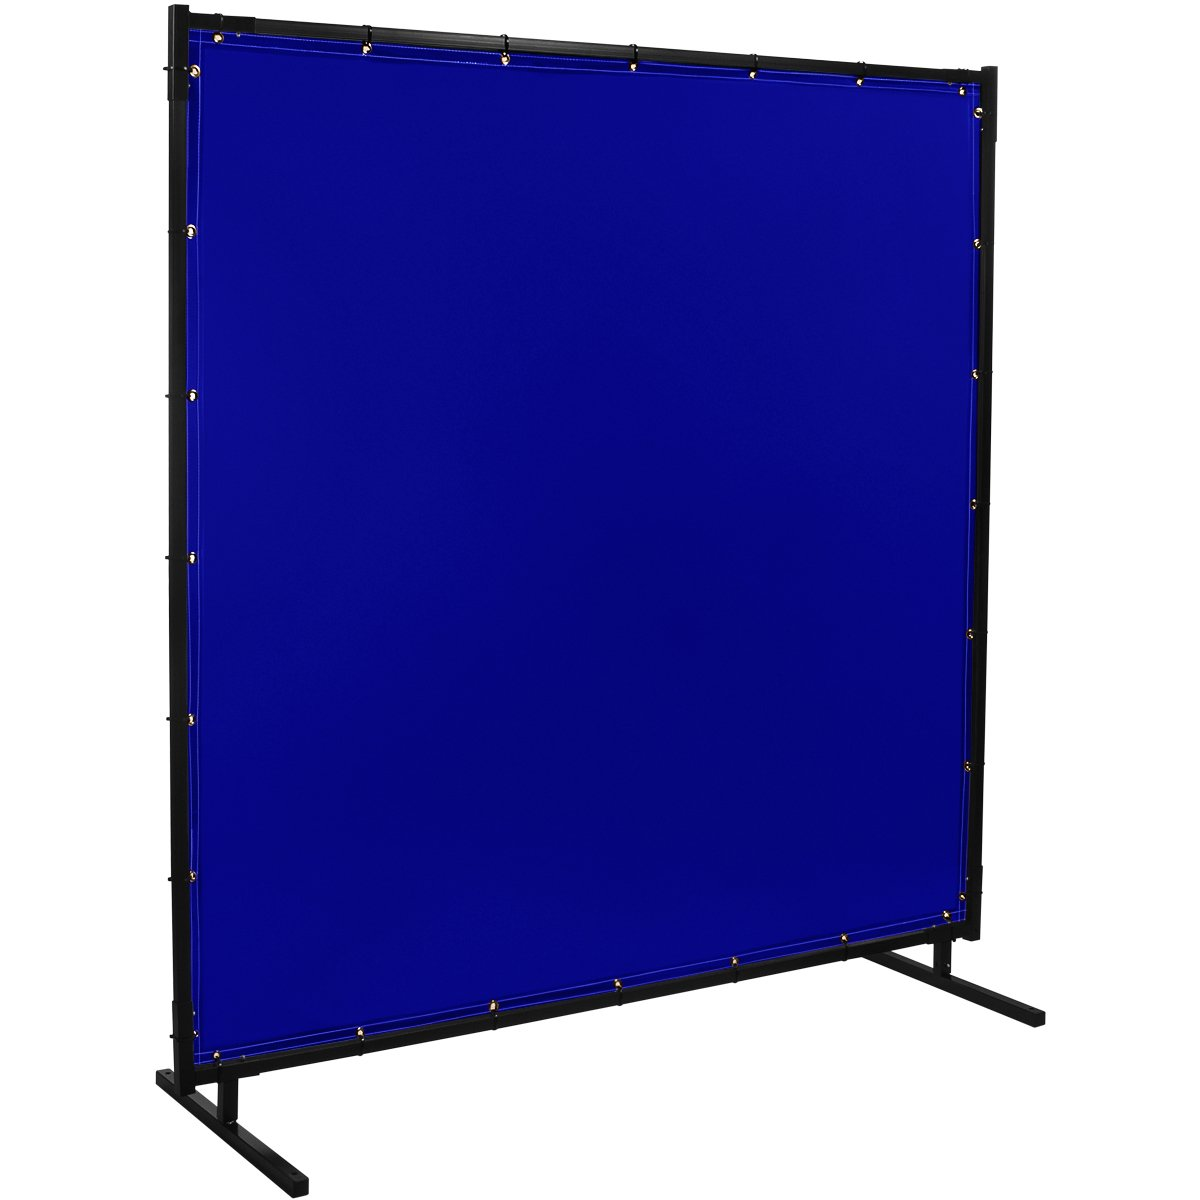 Steiner 525HD-6X8 Protect-O-Screen HD Welding Screen with Flame Retardant 14 Mil Tinted Transparent Vinyl Curtain, Blue, 6' x 8'